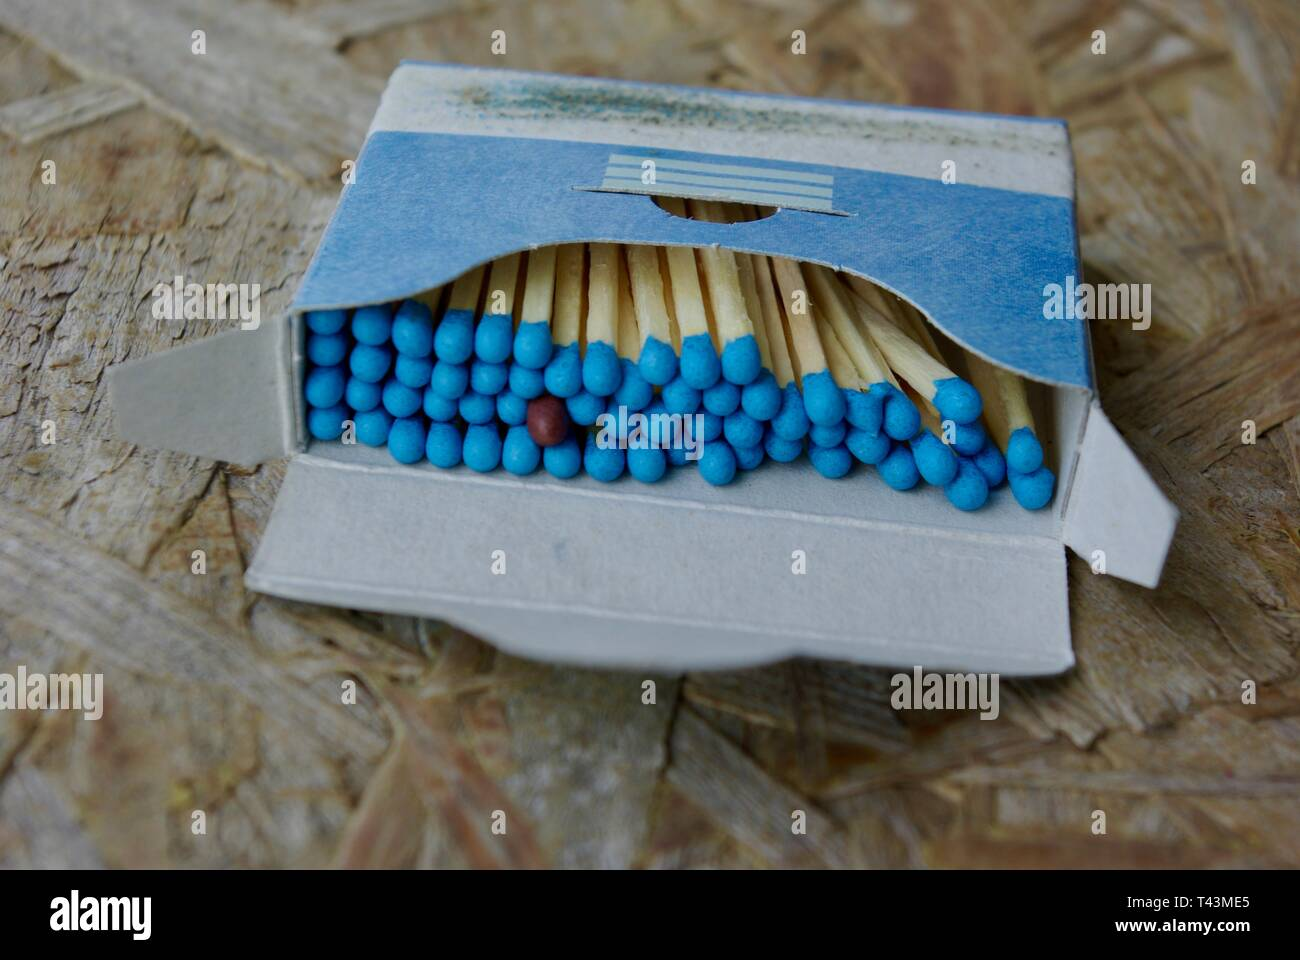 Standing out from the crowd. Close-up of a box of matches with one brown. Meaning of individuality, minority, racism, hospitality, gender equality, di - Stock Image